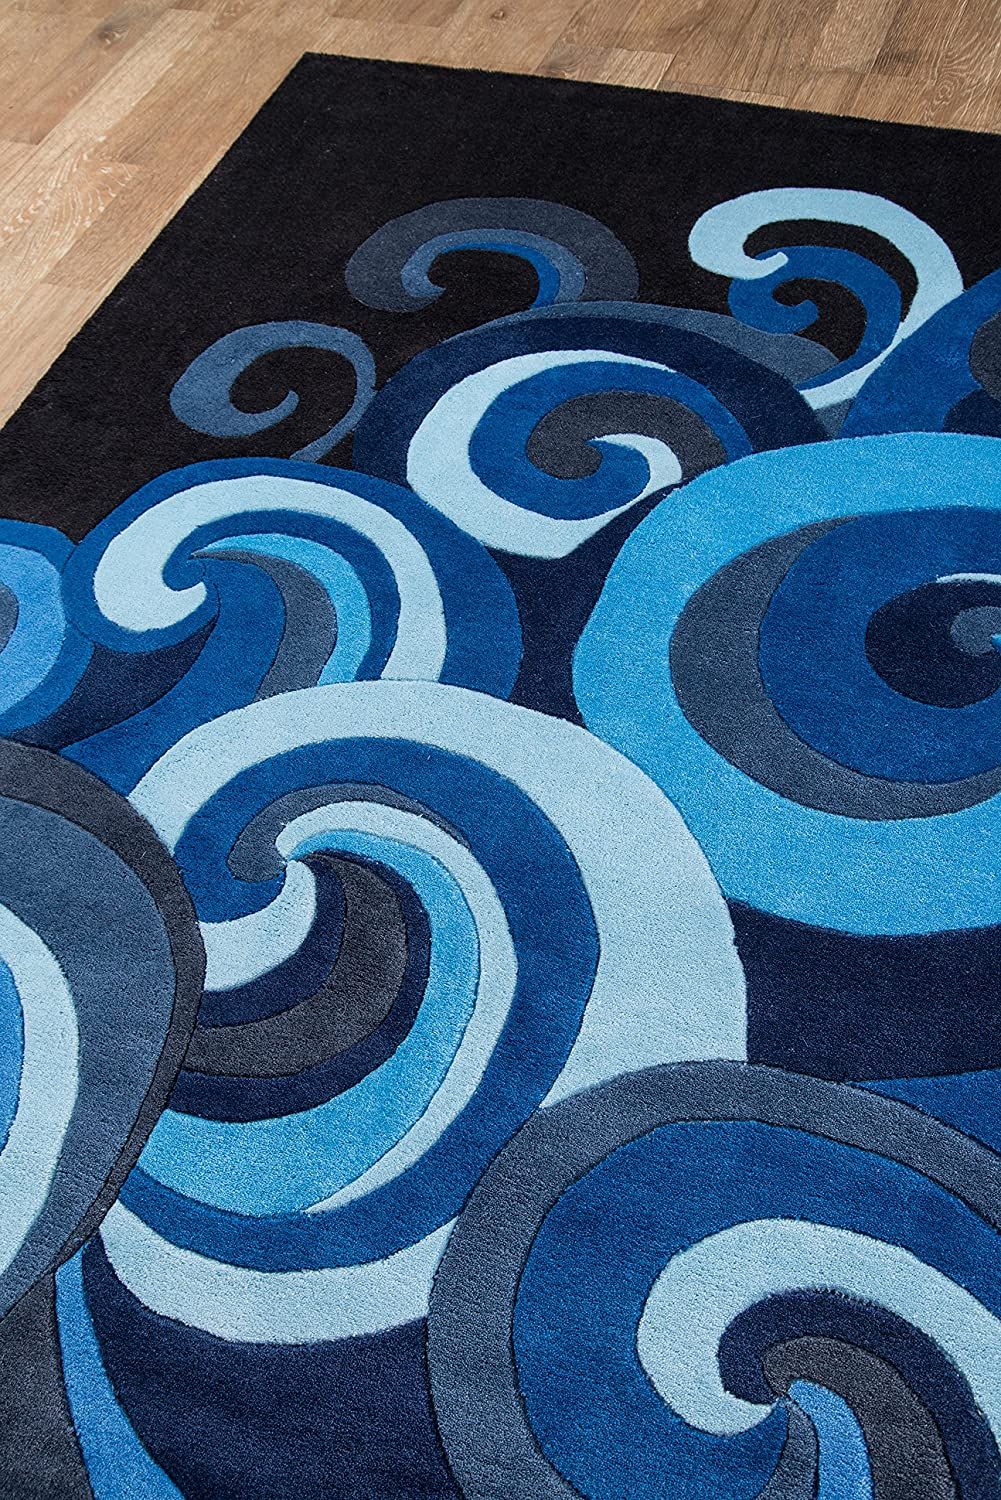 Surf Blue 2 X 3 2 X 3 Momeni Rugs Lmotwlmt 1sur2030 Lil Mo Hipster Collection Kids Themed Hand Carved Tufted Area Rug Area Rugs Home Kitchen